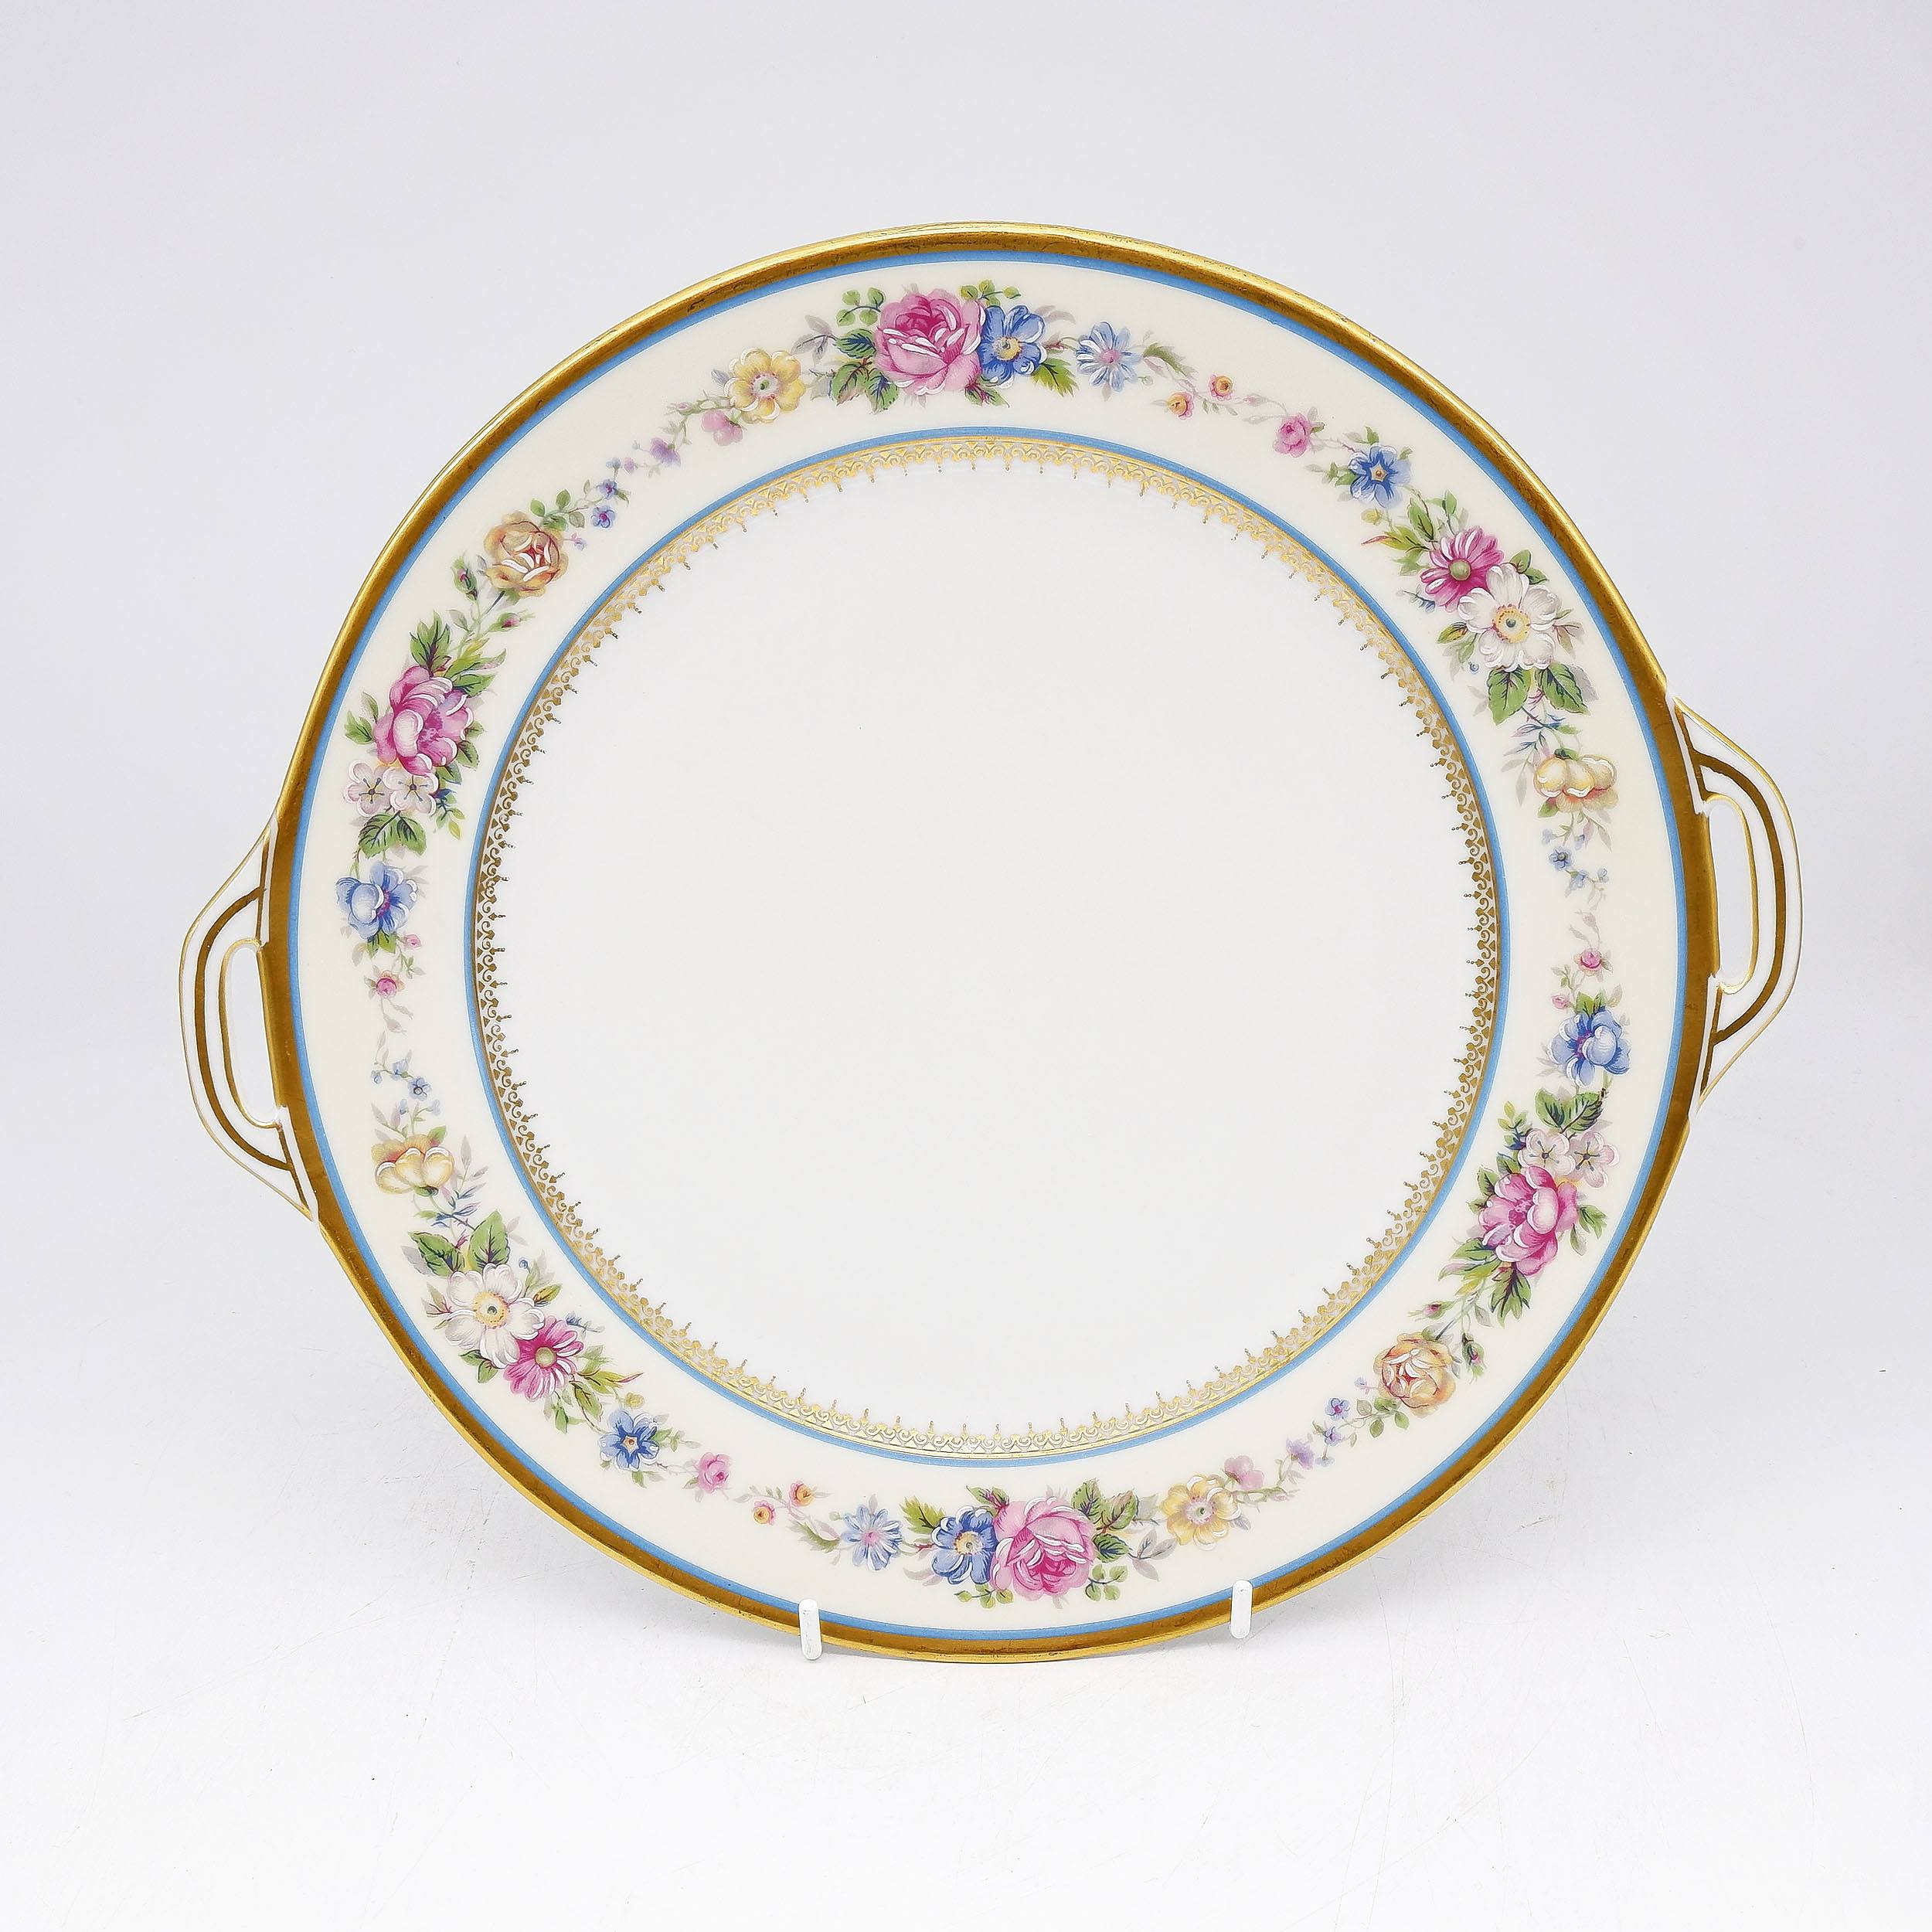 'Hand Painted Limoges Porcelain Tray with Ormolu Rim '